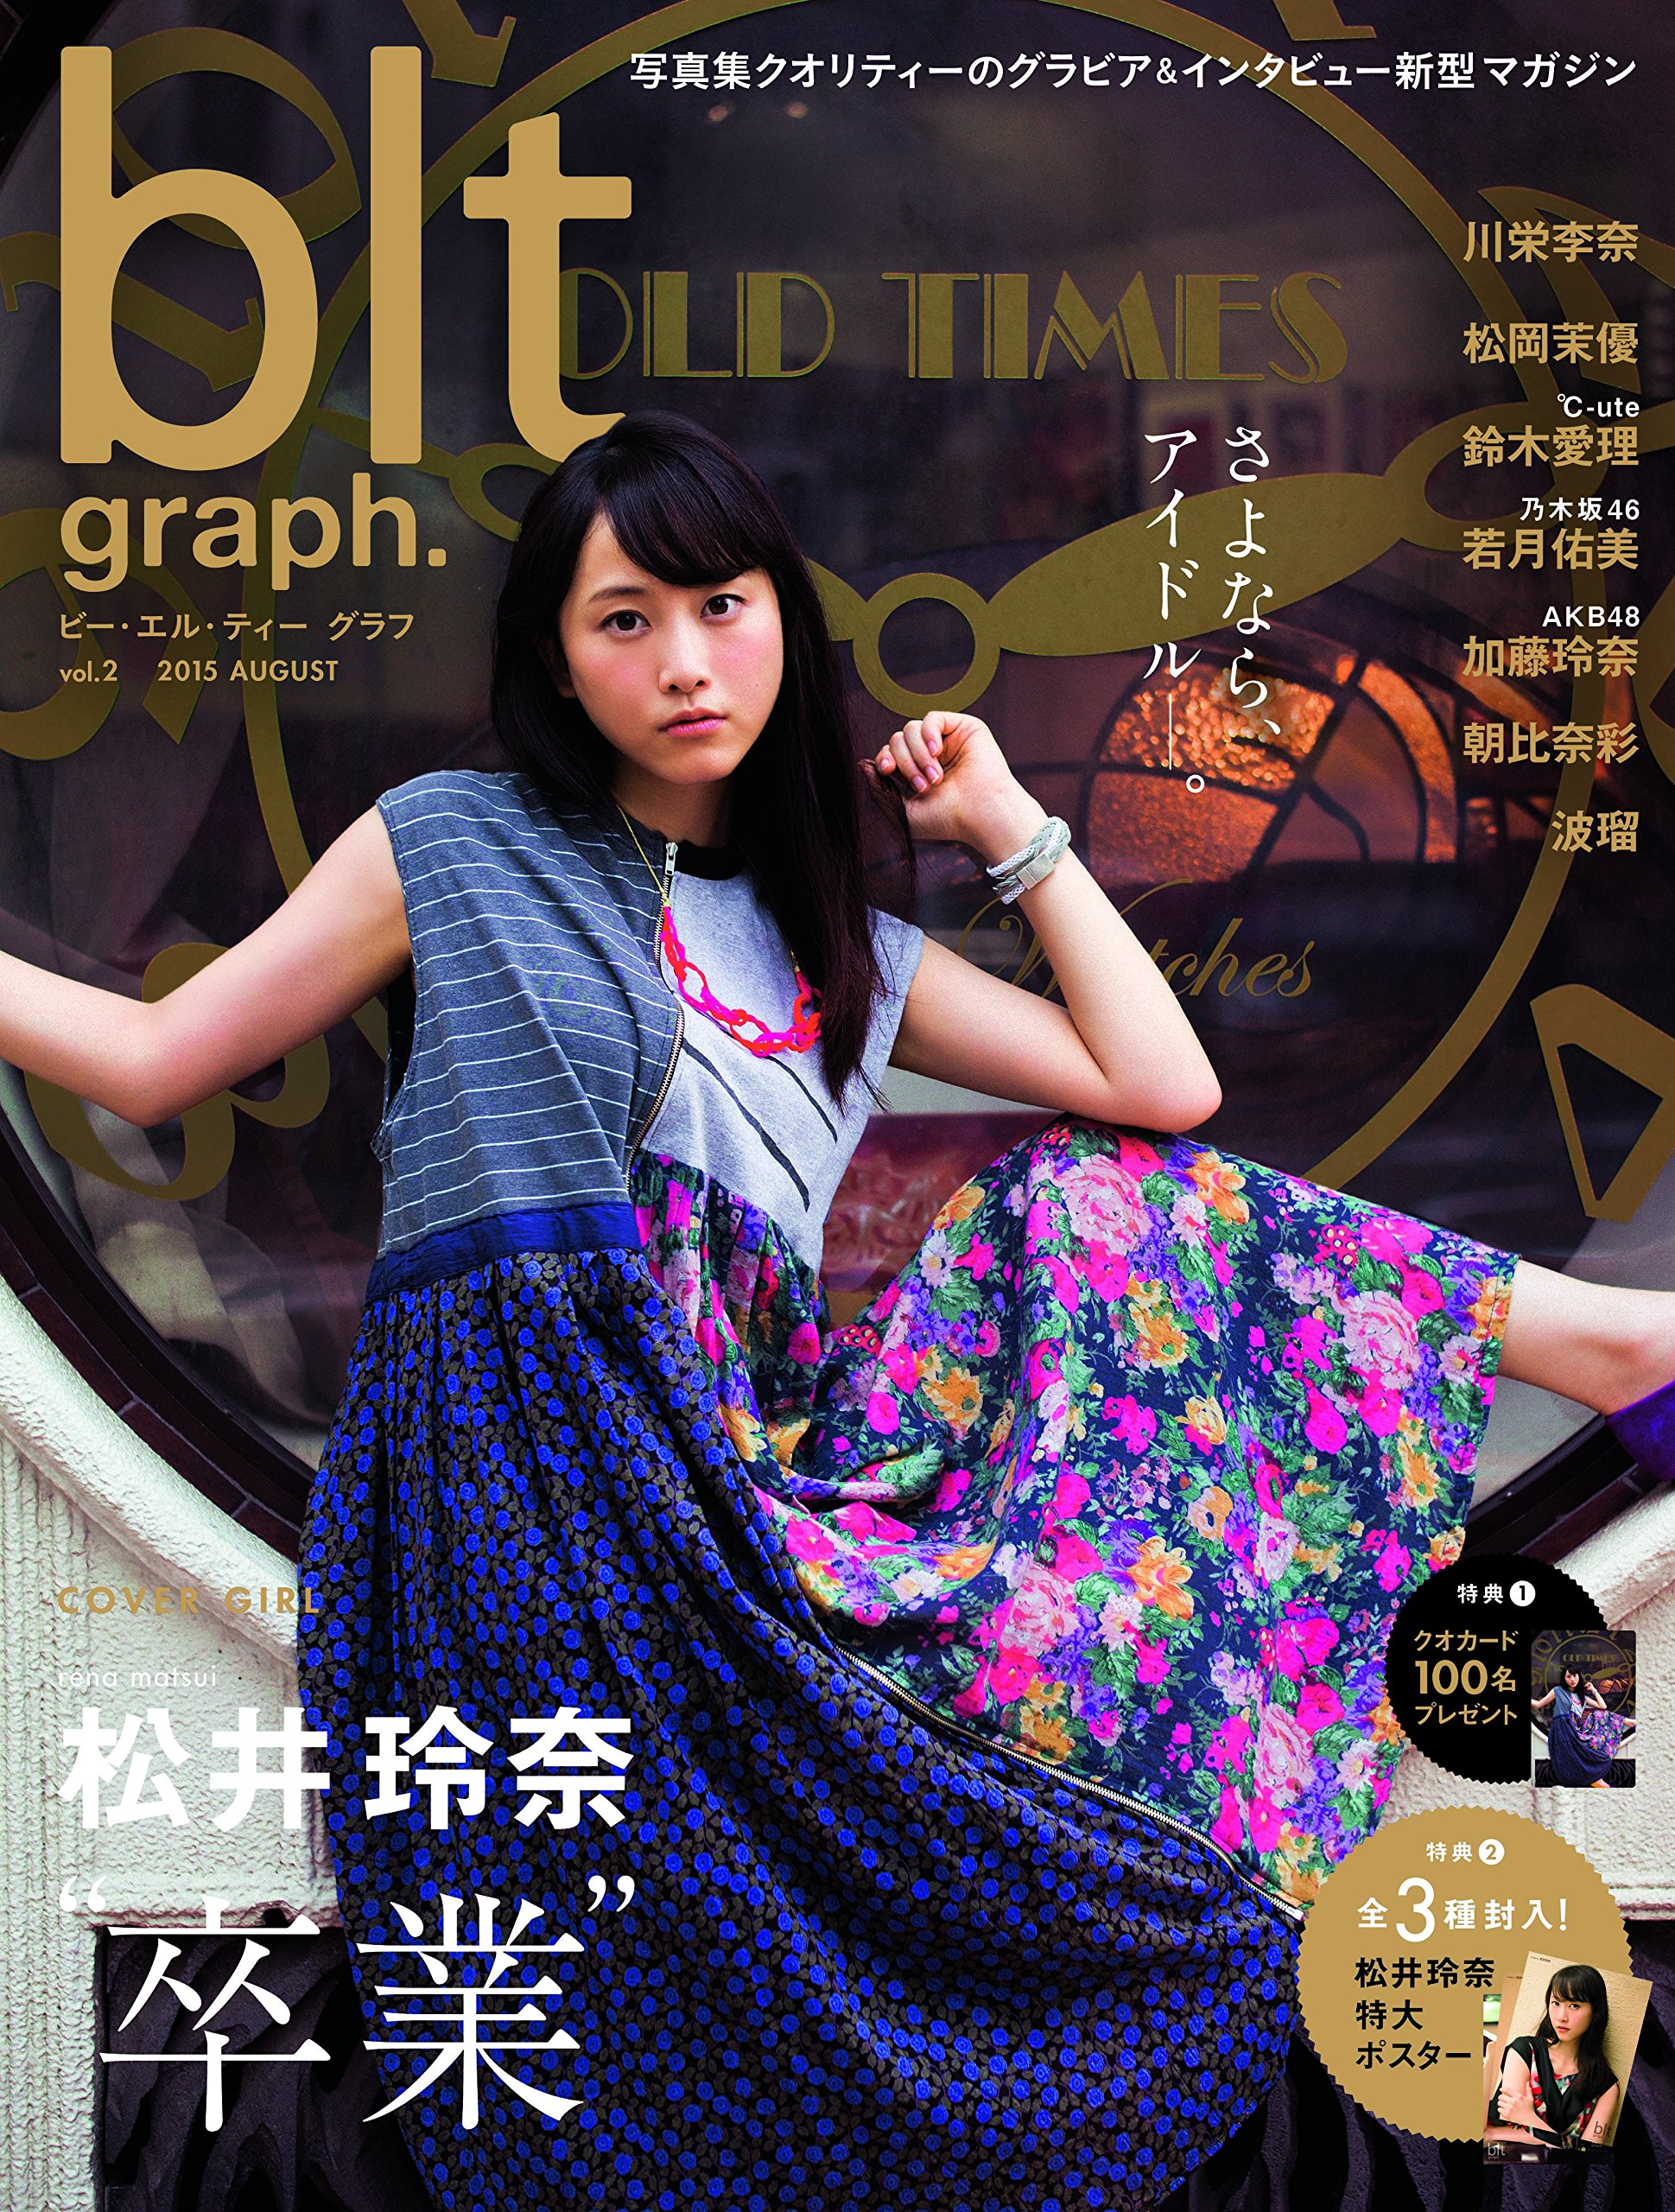 松井玲奈 blt graph. vol.2 (1)